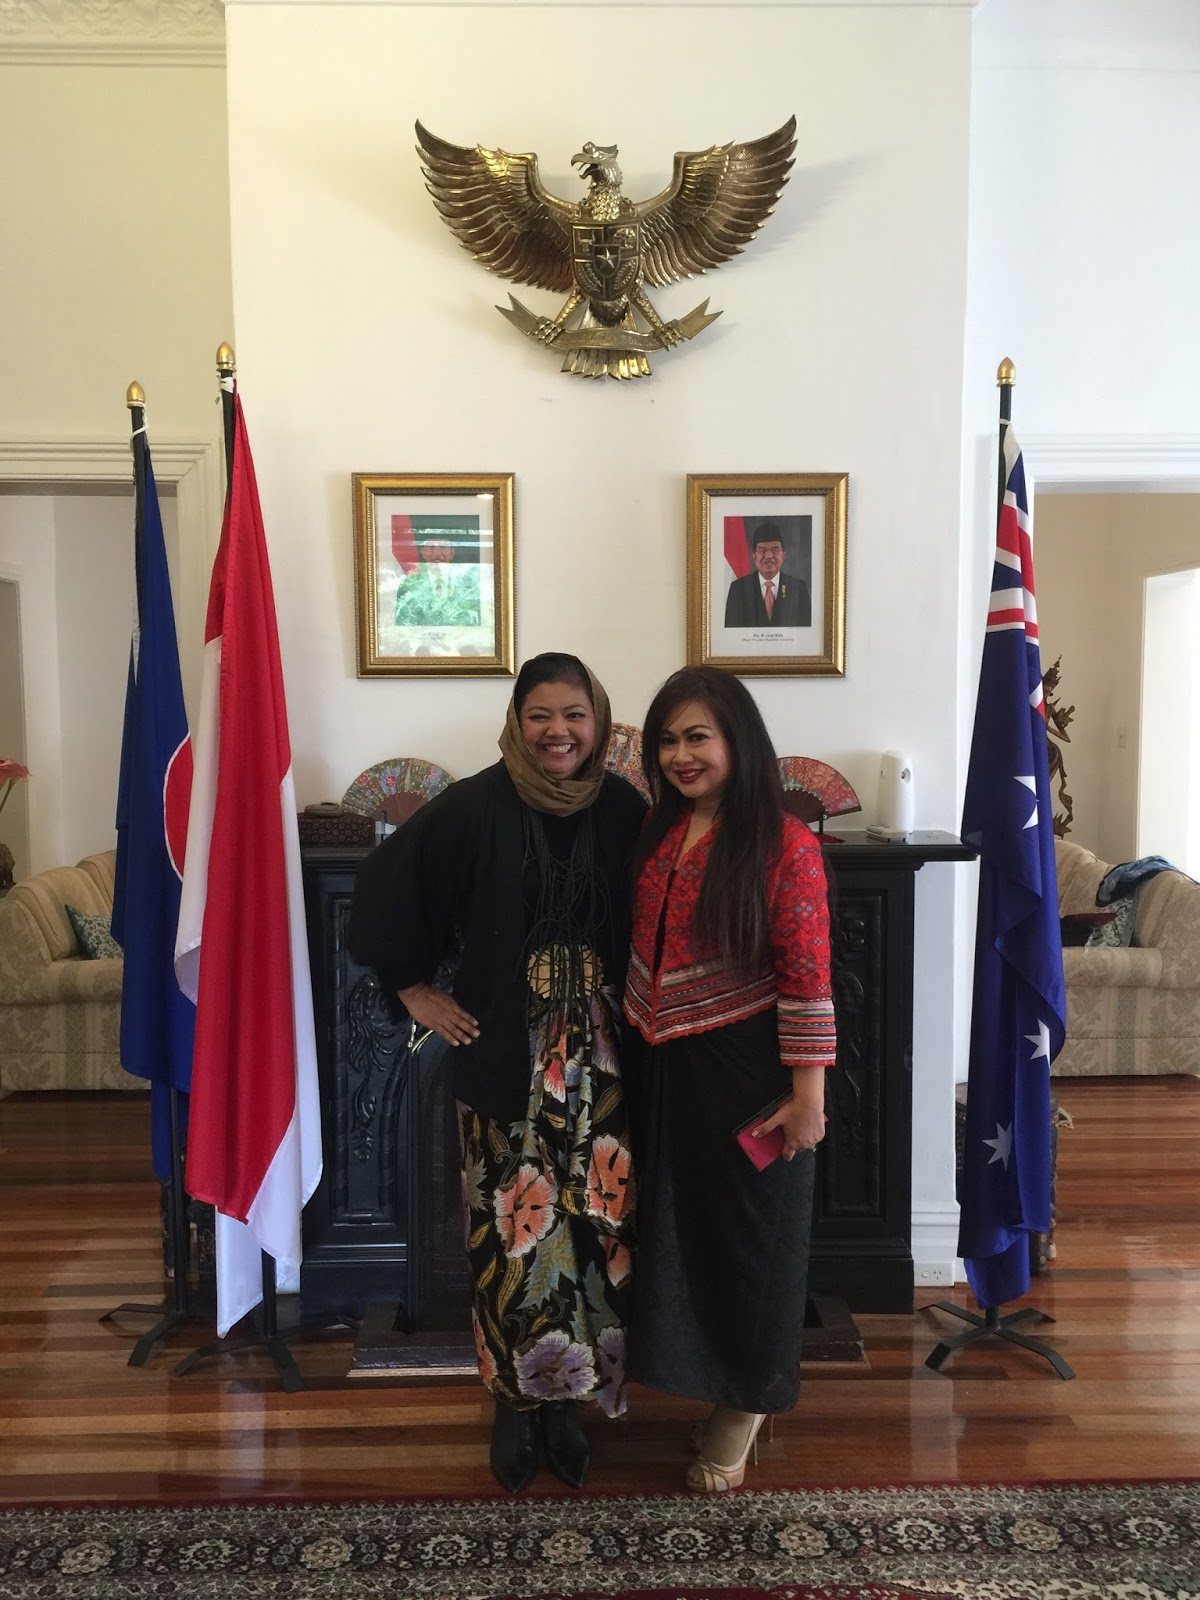 Mrs Irene Mulyana spouse of Indonesian Consul General to NSW host of the event with Ms Novita Yunus Batik Chic designer